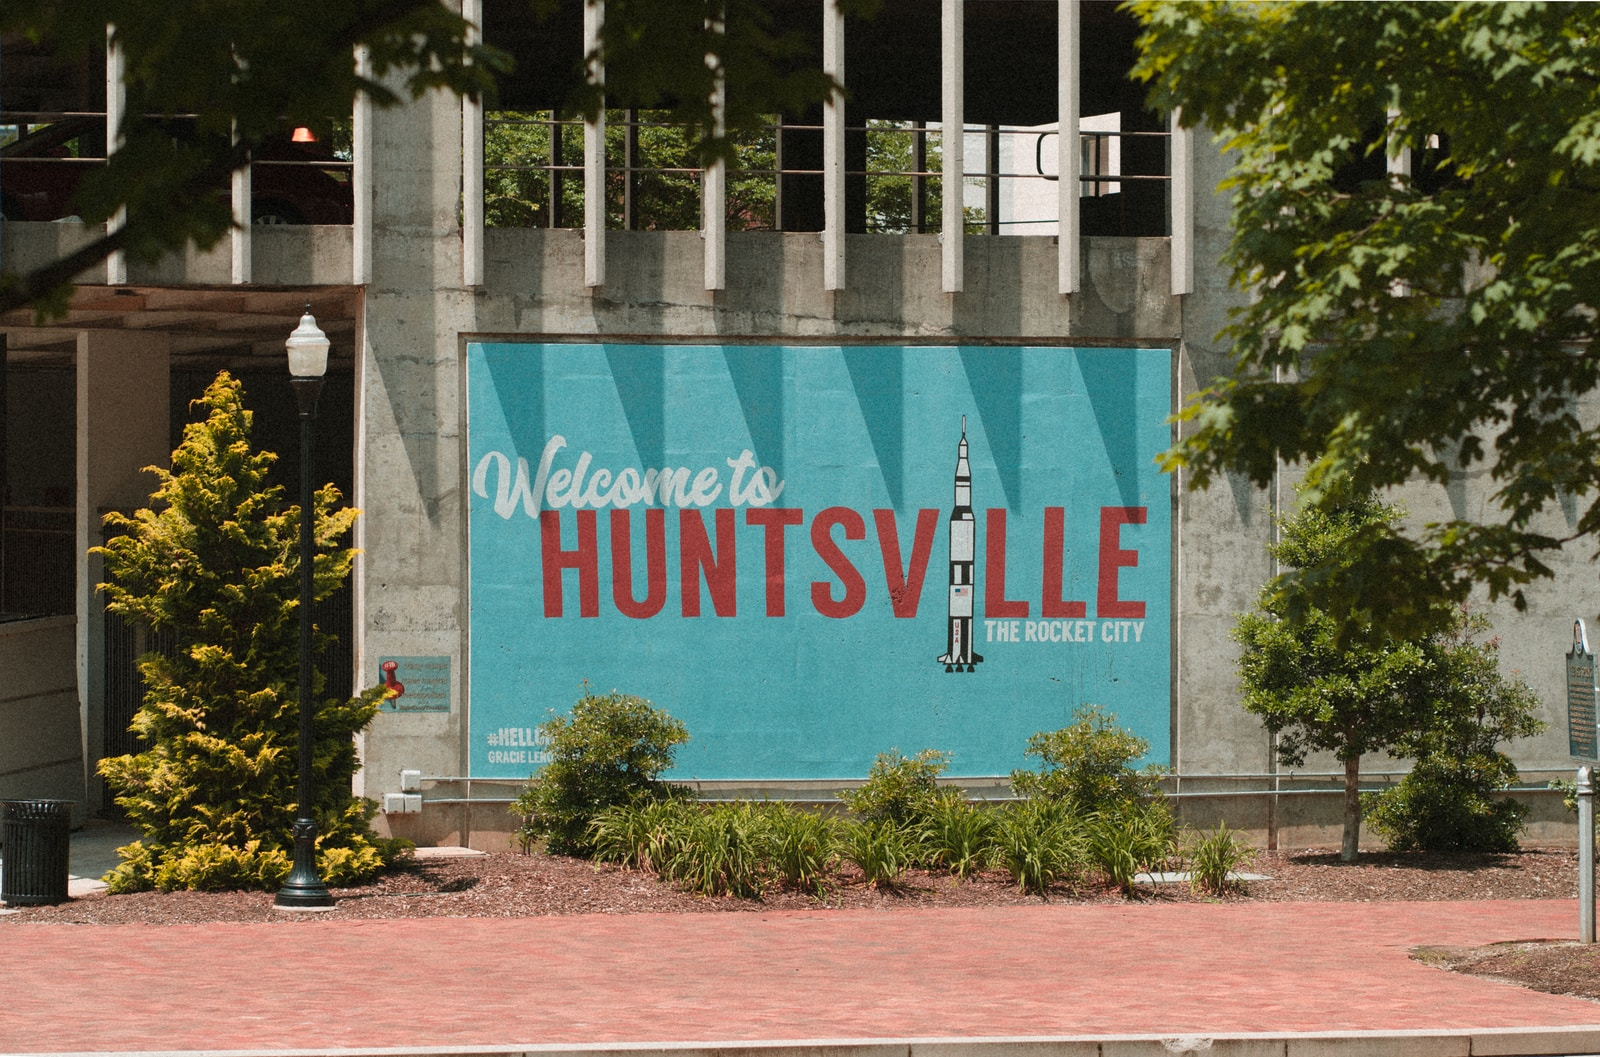 welcome to Huntsville sign on wall near trees and lamppost